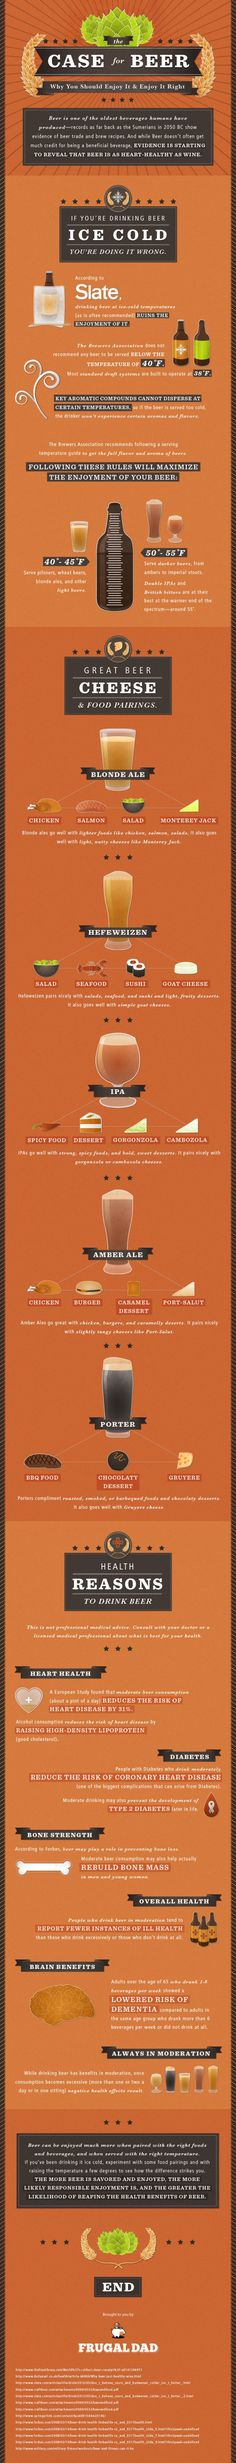 The Case for Beer [infographic]